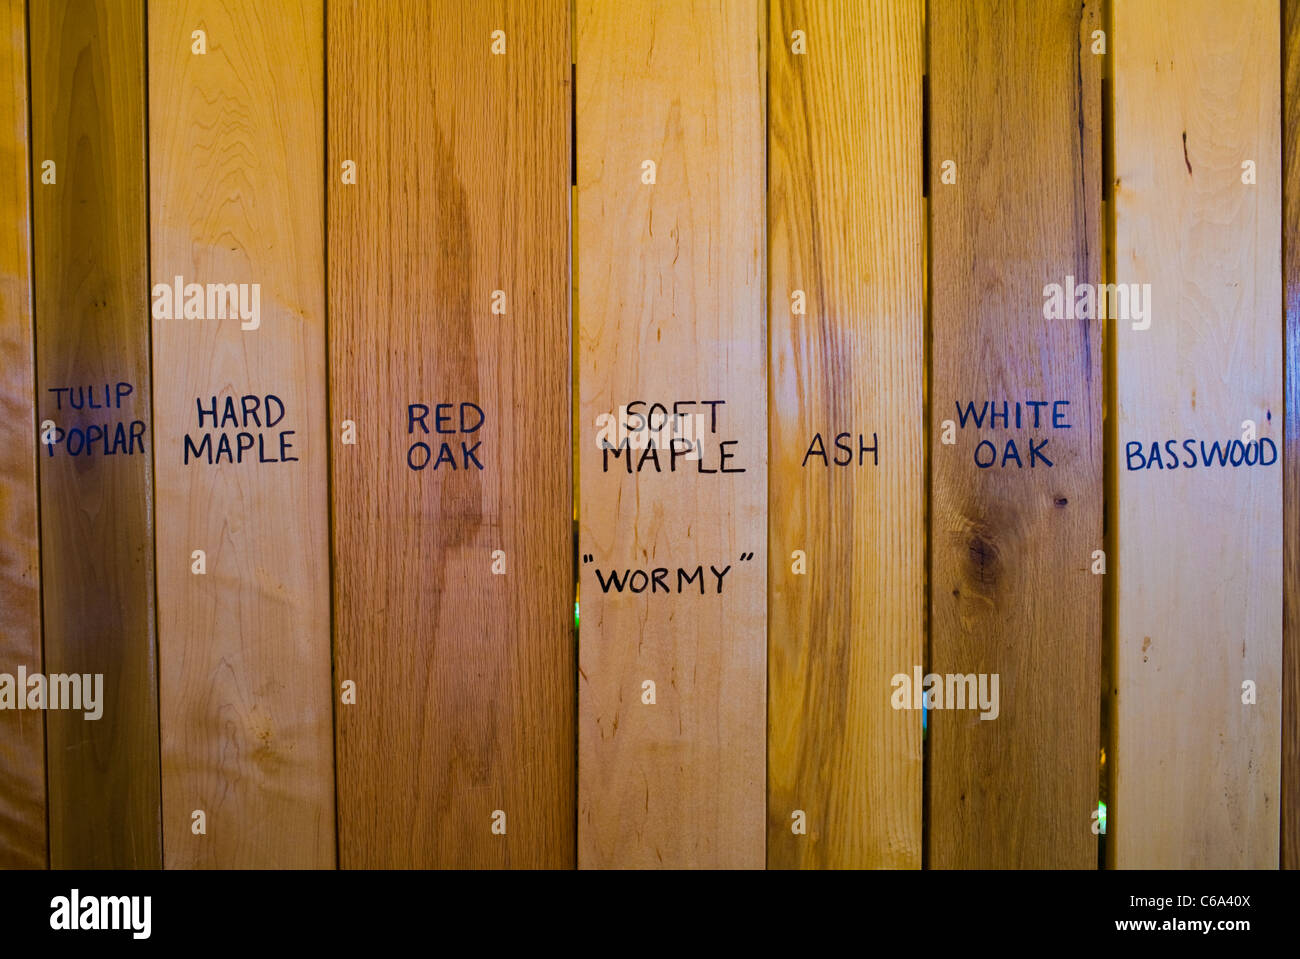 Wood display at Woodsmen's Field Days, Boonville, Adirondacks, New York State - Stock Image